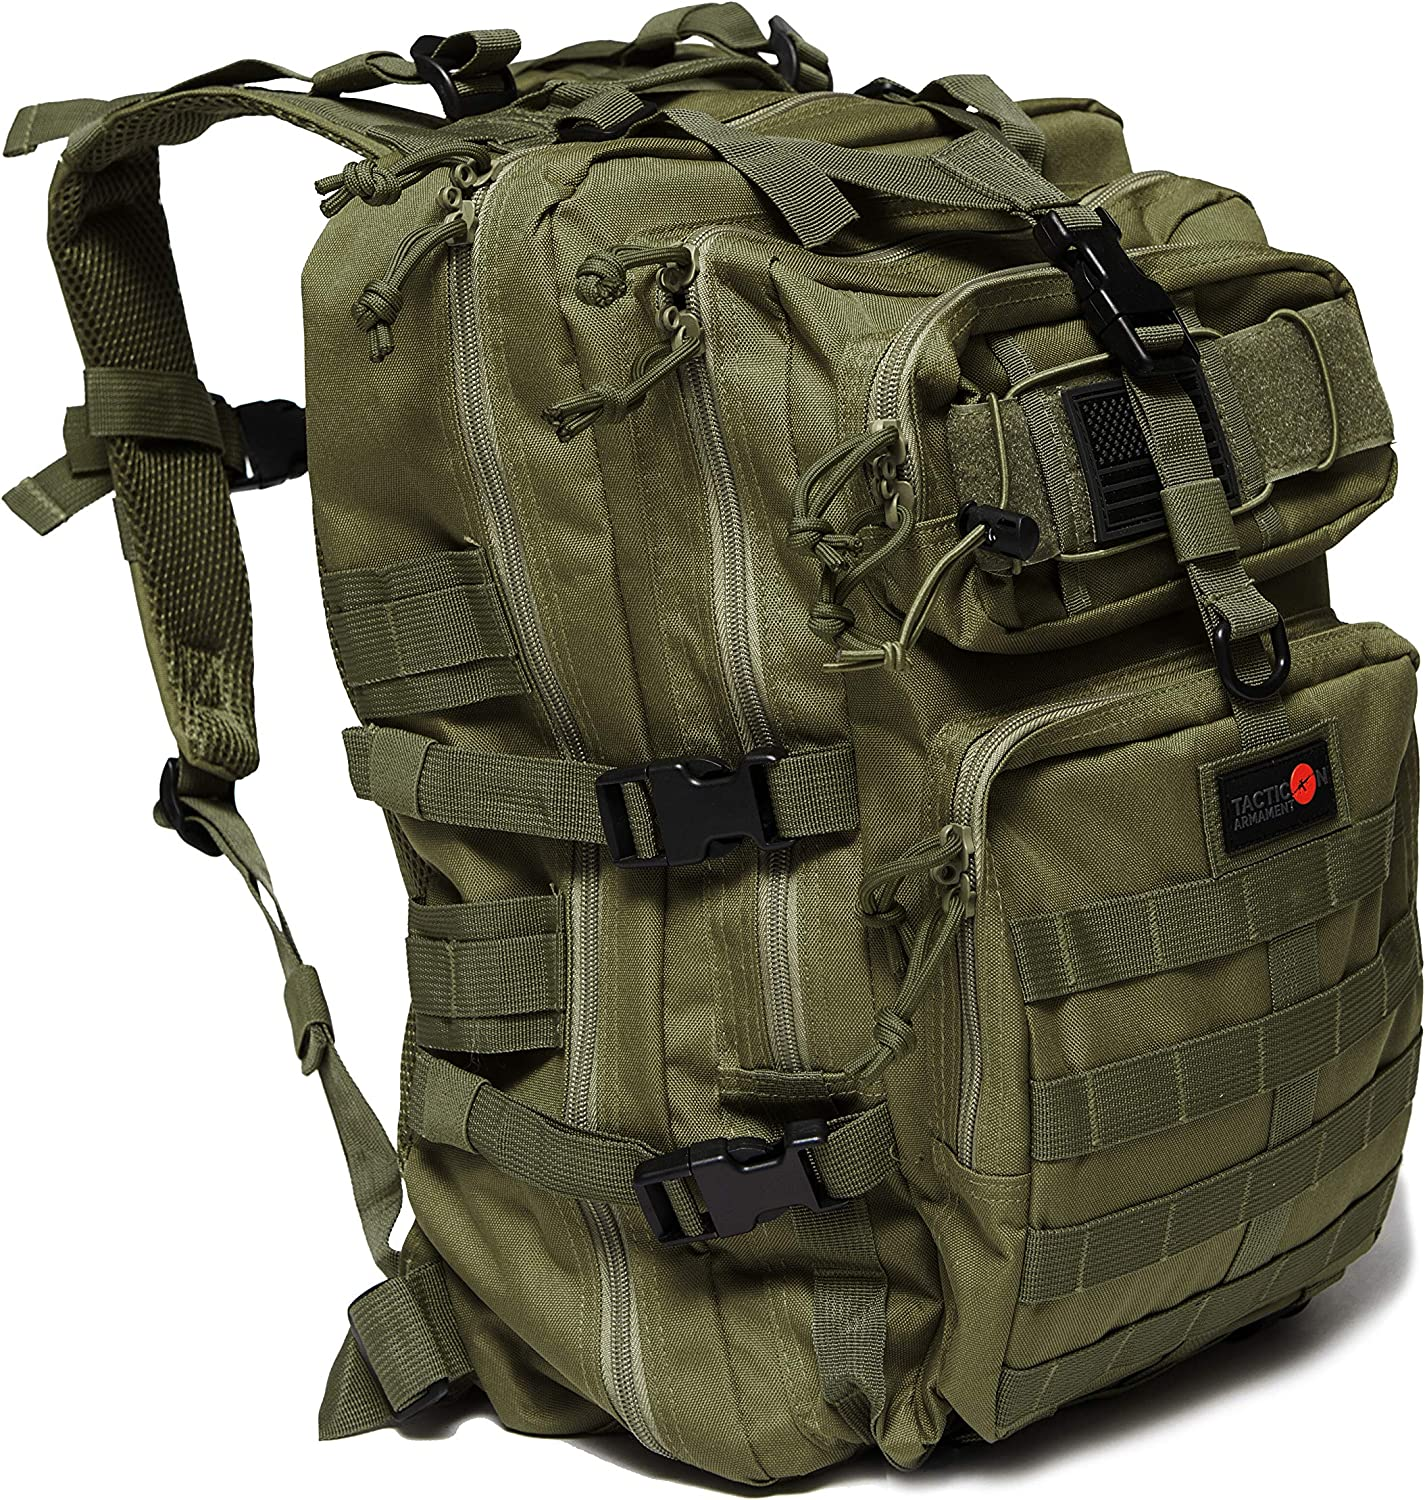 24BattlePack Tactical Backpack | 1 to 3 Day Assault Pack | 40L Bug Out Bag